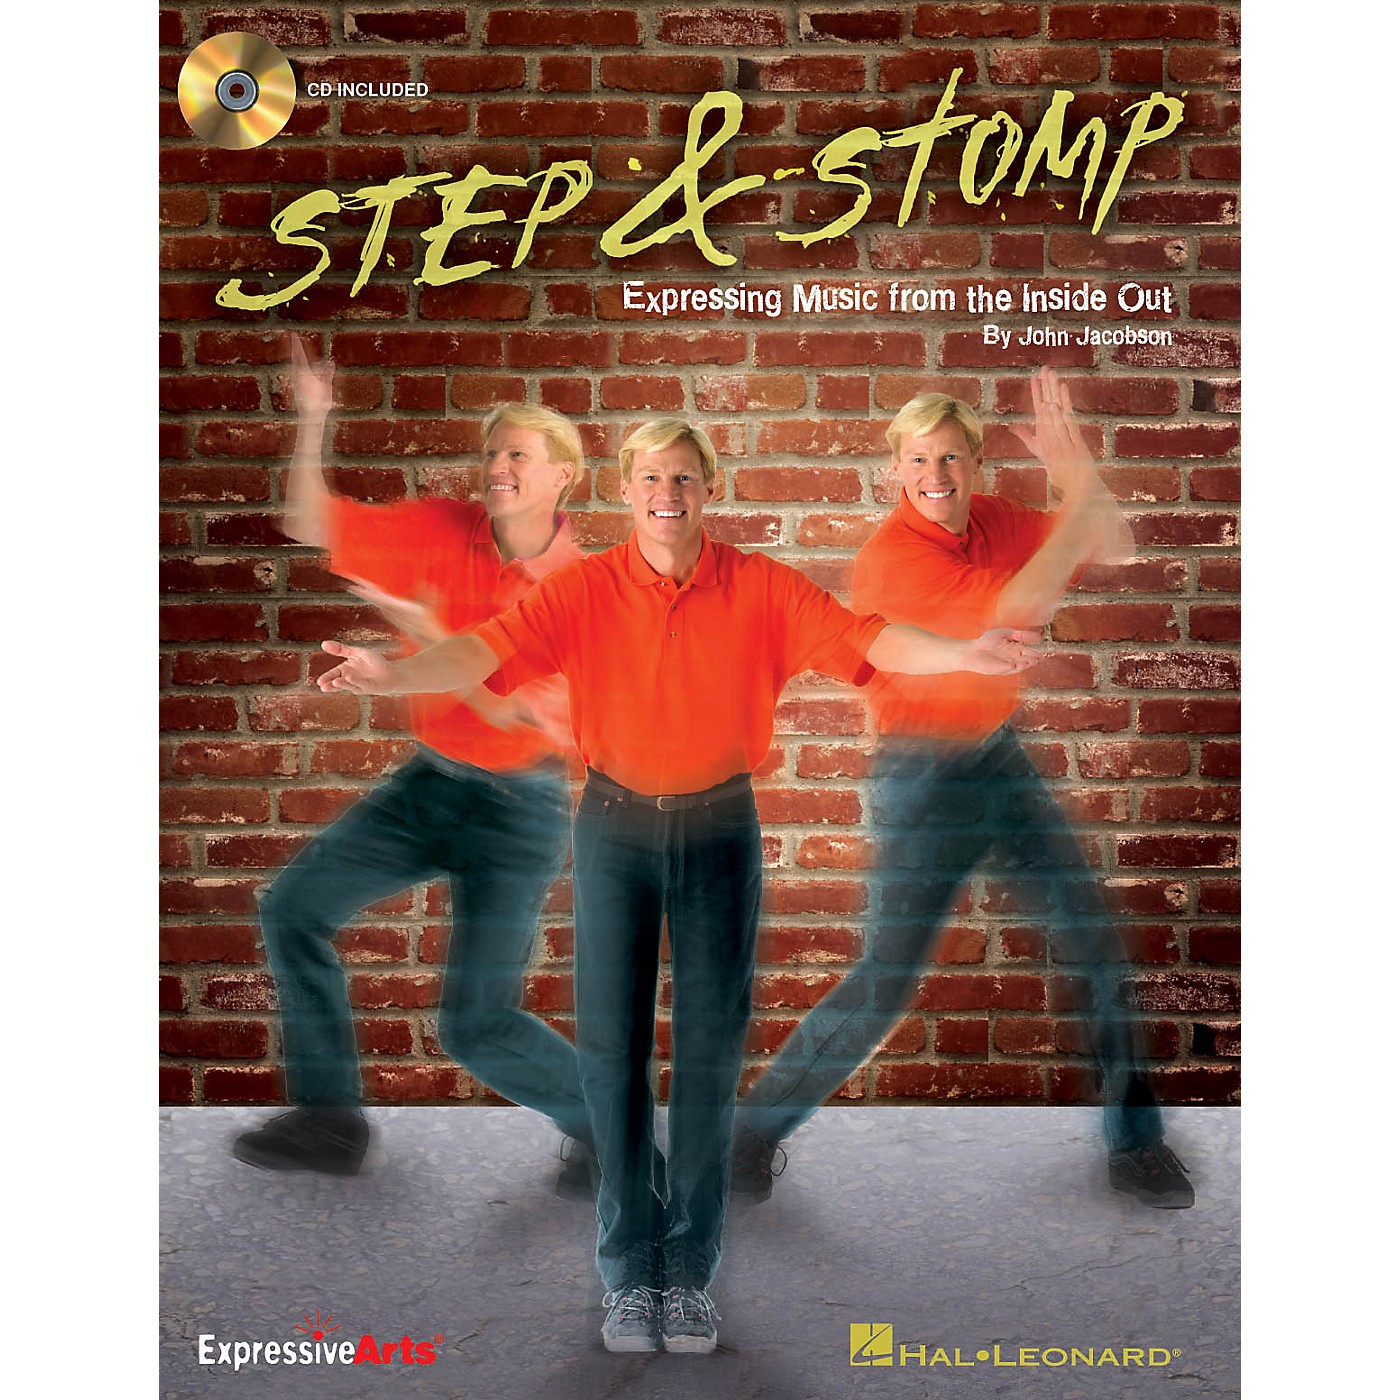 Hal Leonard Step & Stomp (Expressing Music from the Inside Out) Composed by John Jacobson thumbnail